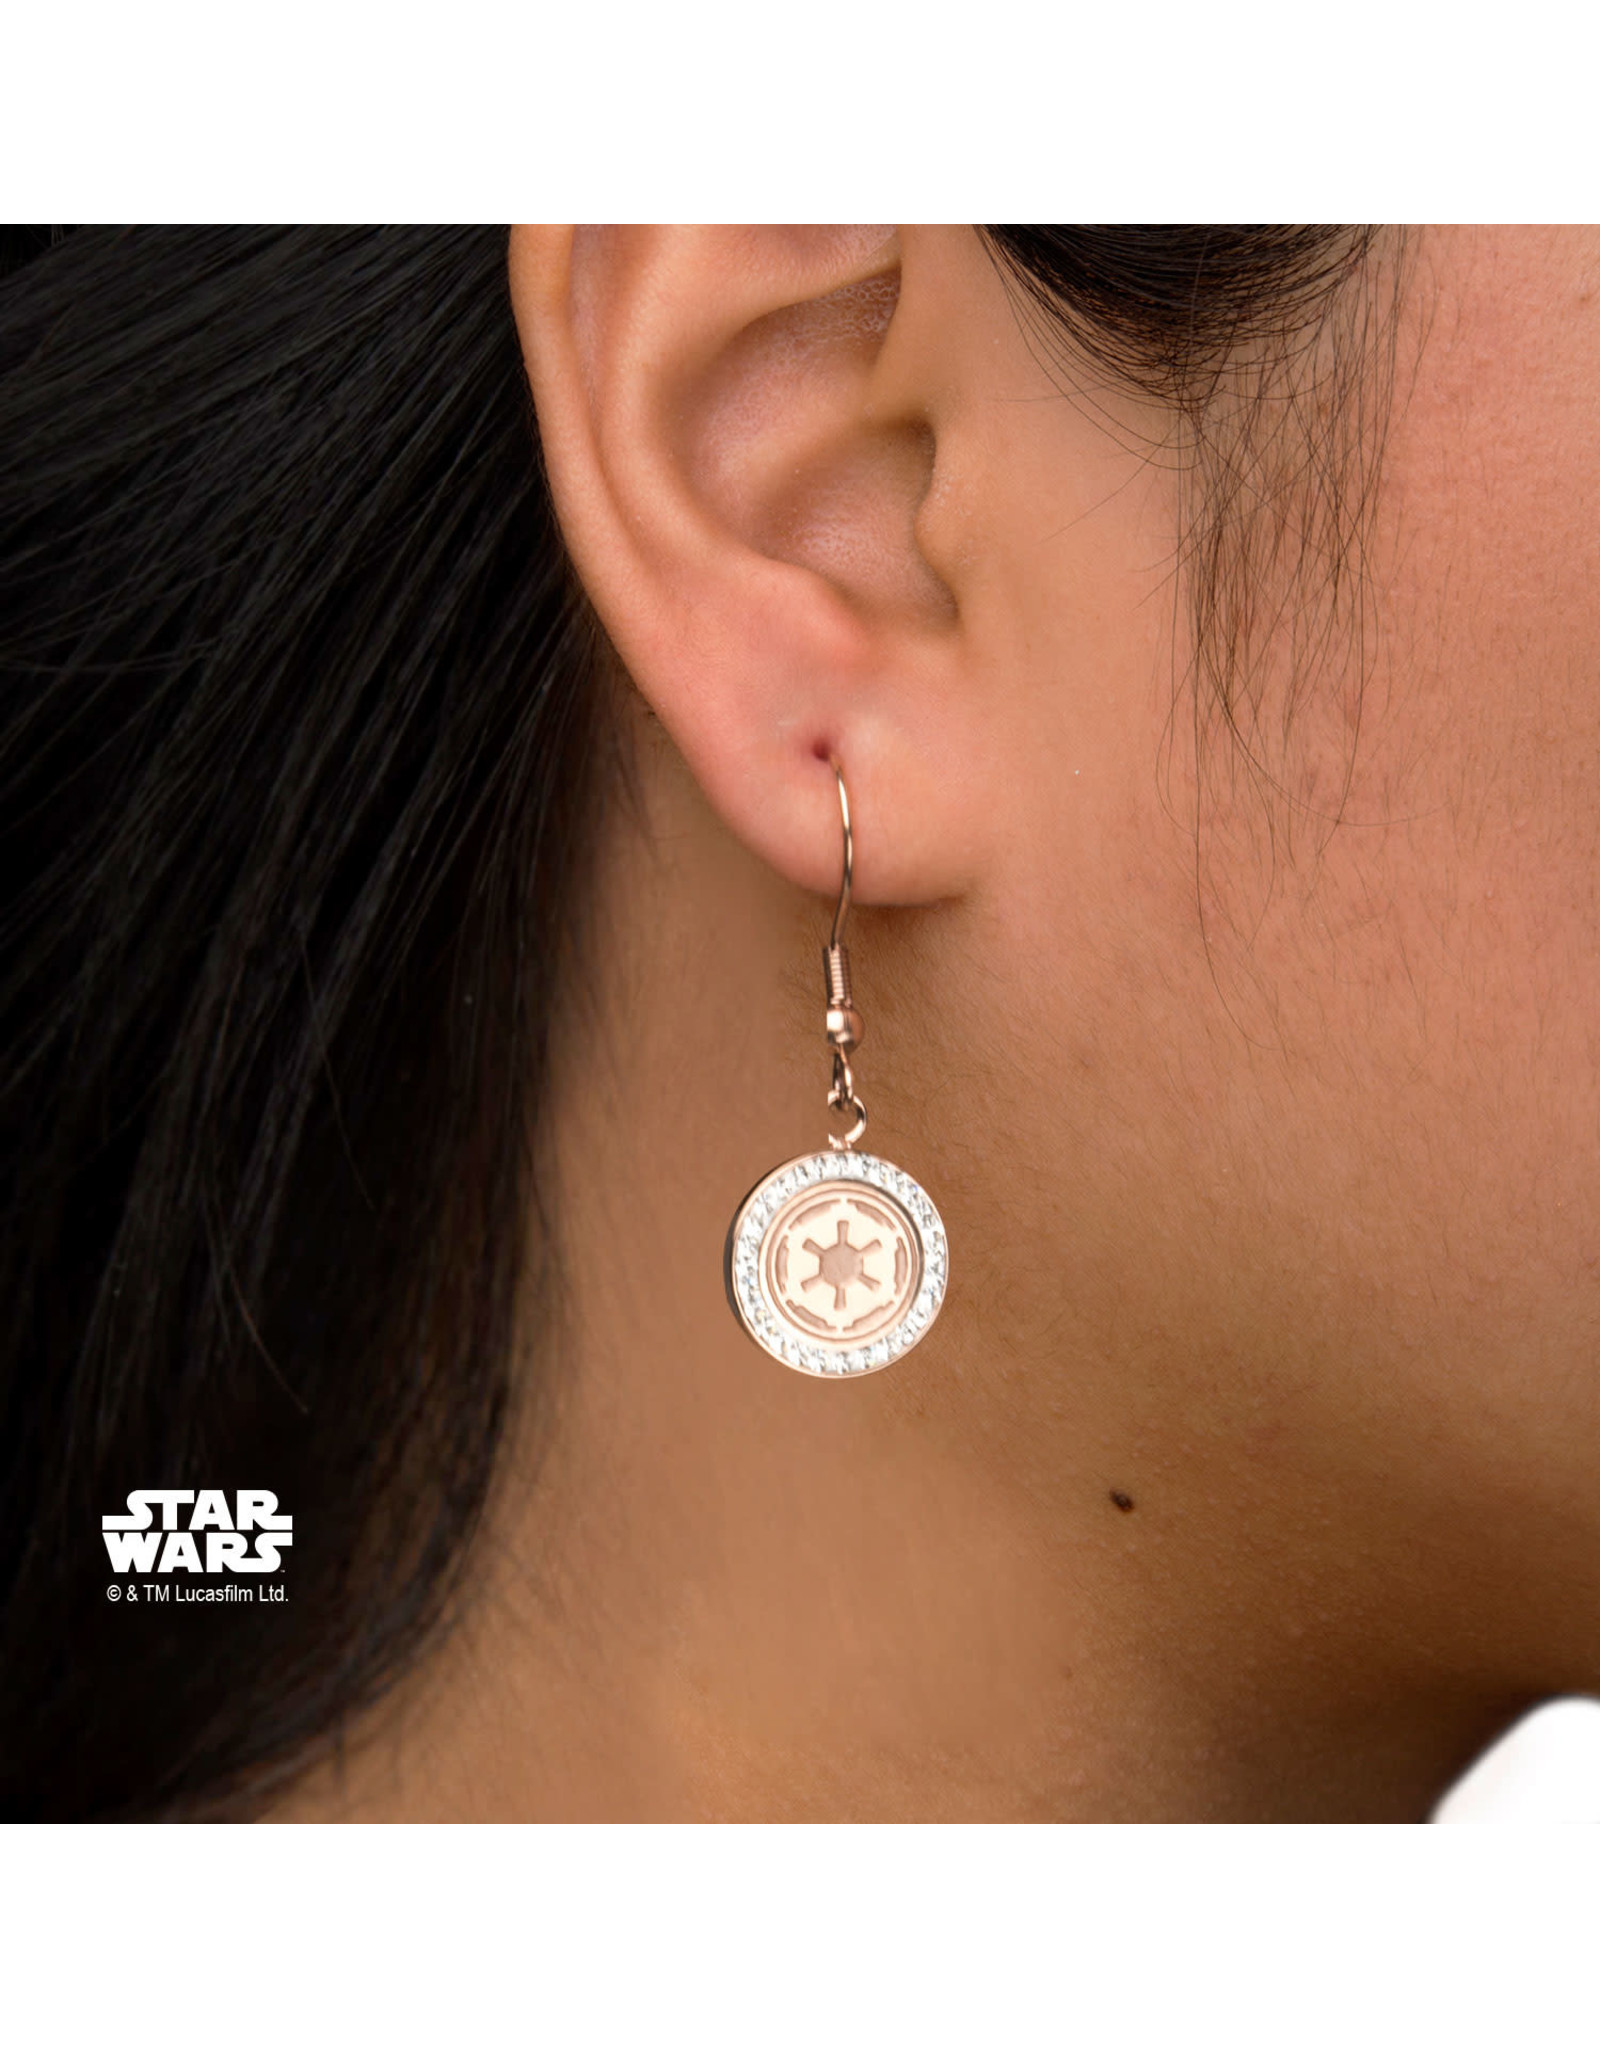 STAR WARS - Stainless Steel Gold P Empire Symbol Hook Dangle Earrings